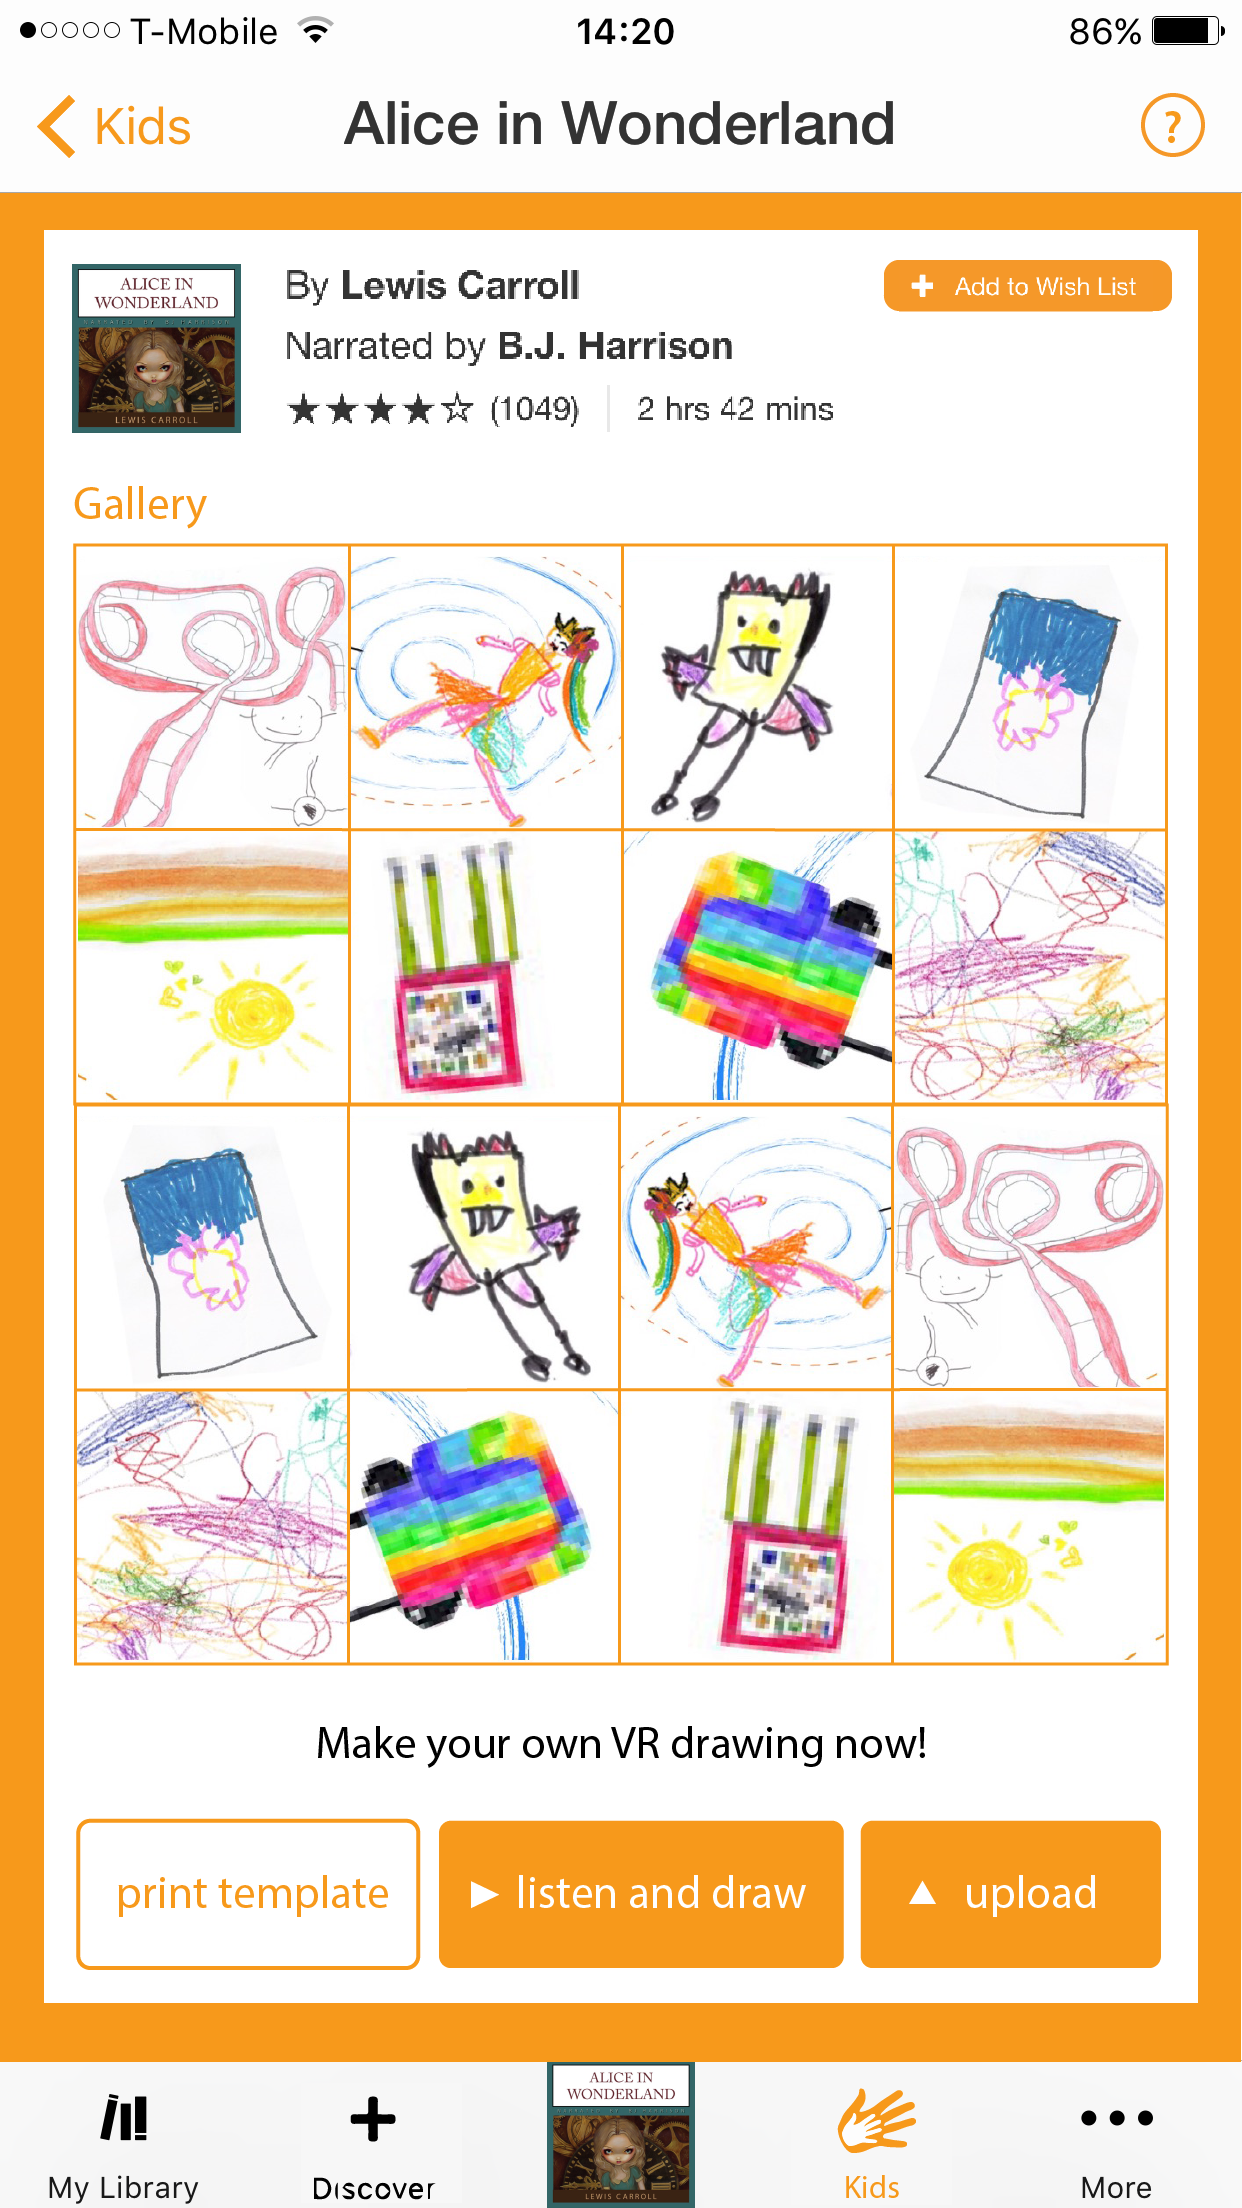 3. Online Creative Community - After drawing and uploading, parents can help children share their creations in our online community, or browse other kids' drawings and boost their creativity!